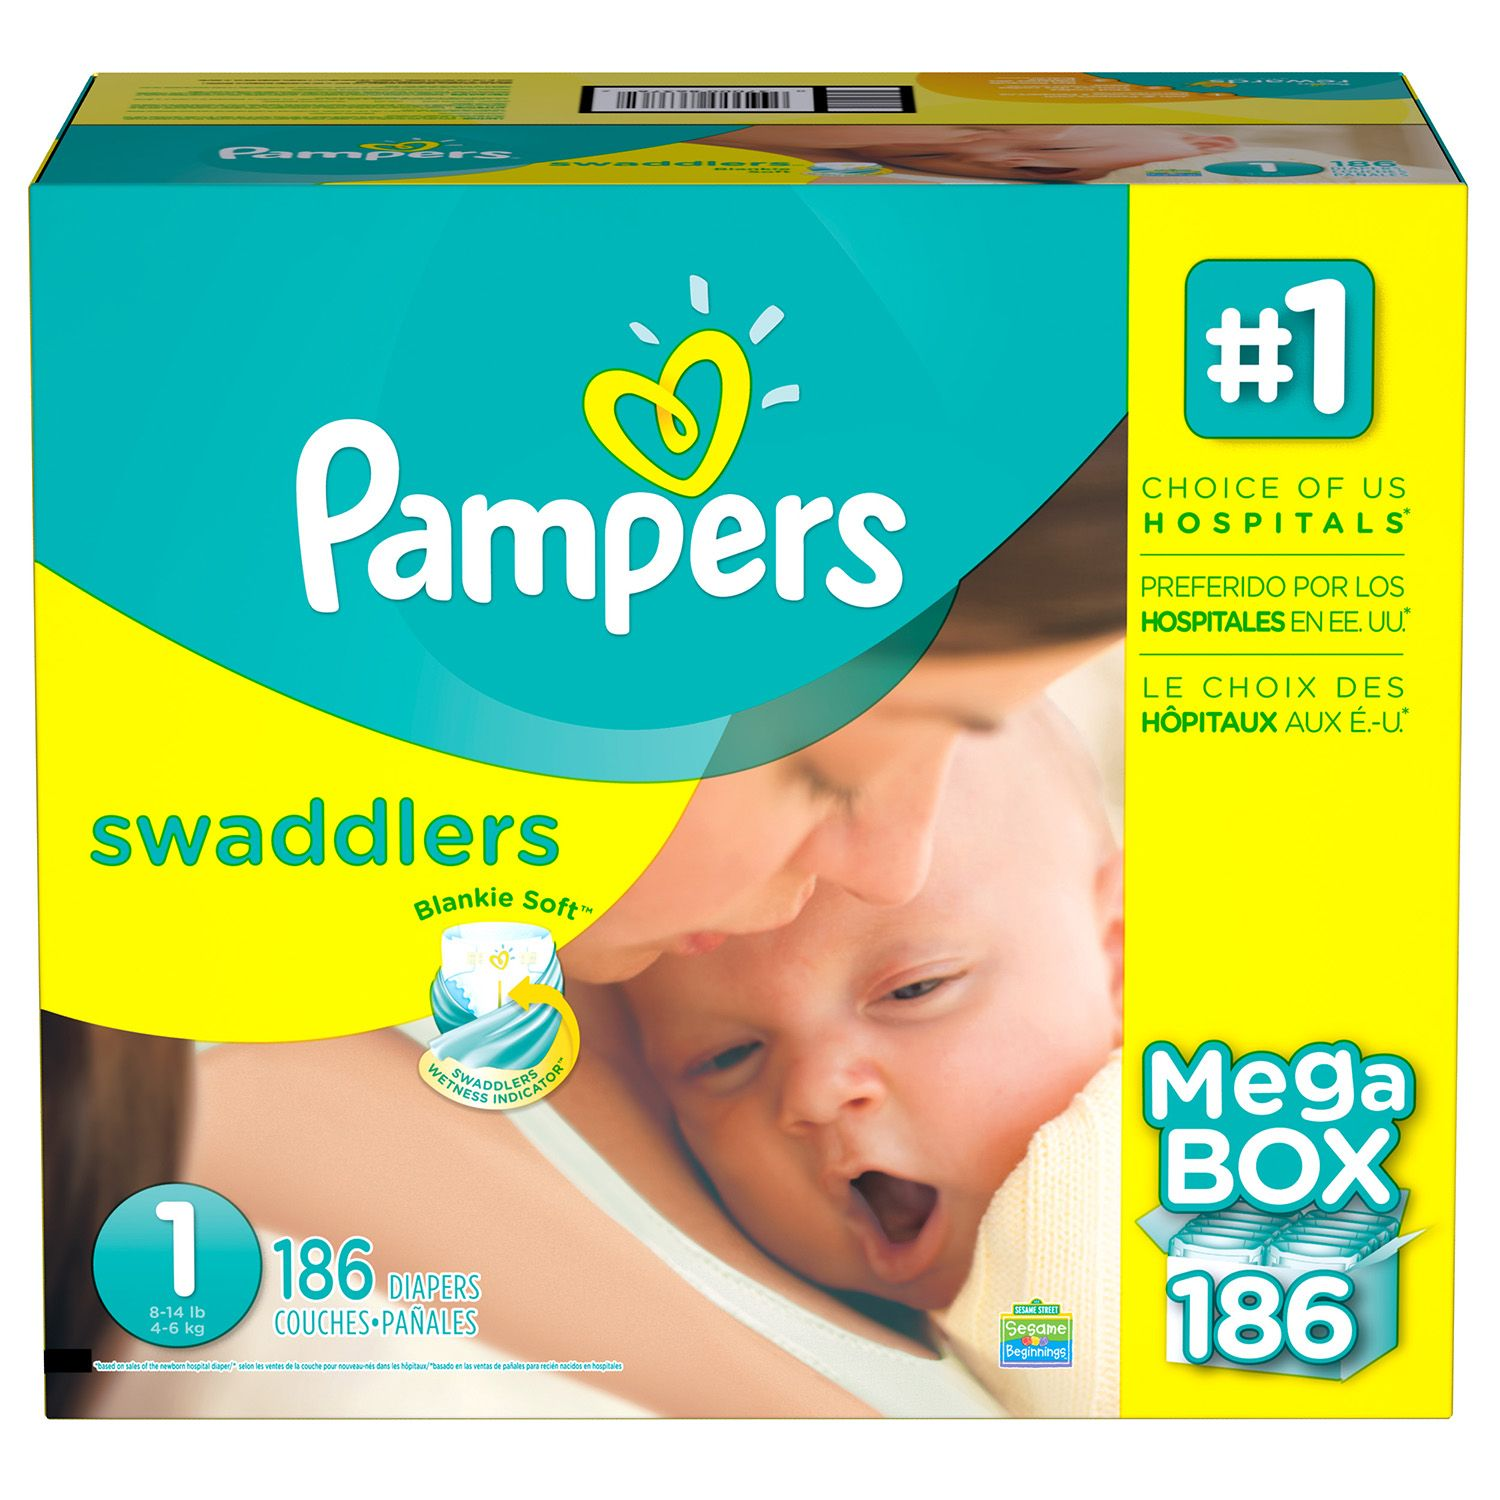 Pampers Swaddlers Diapers (Size 1, 186 ct.)